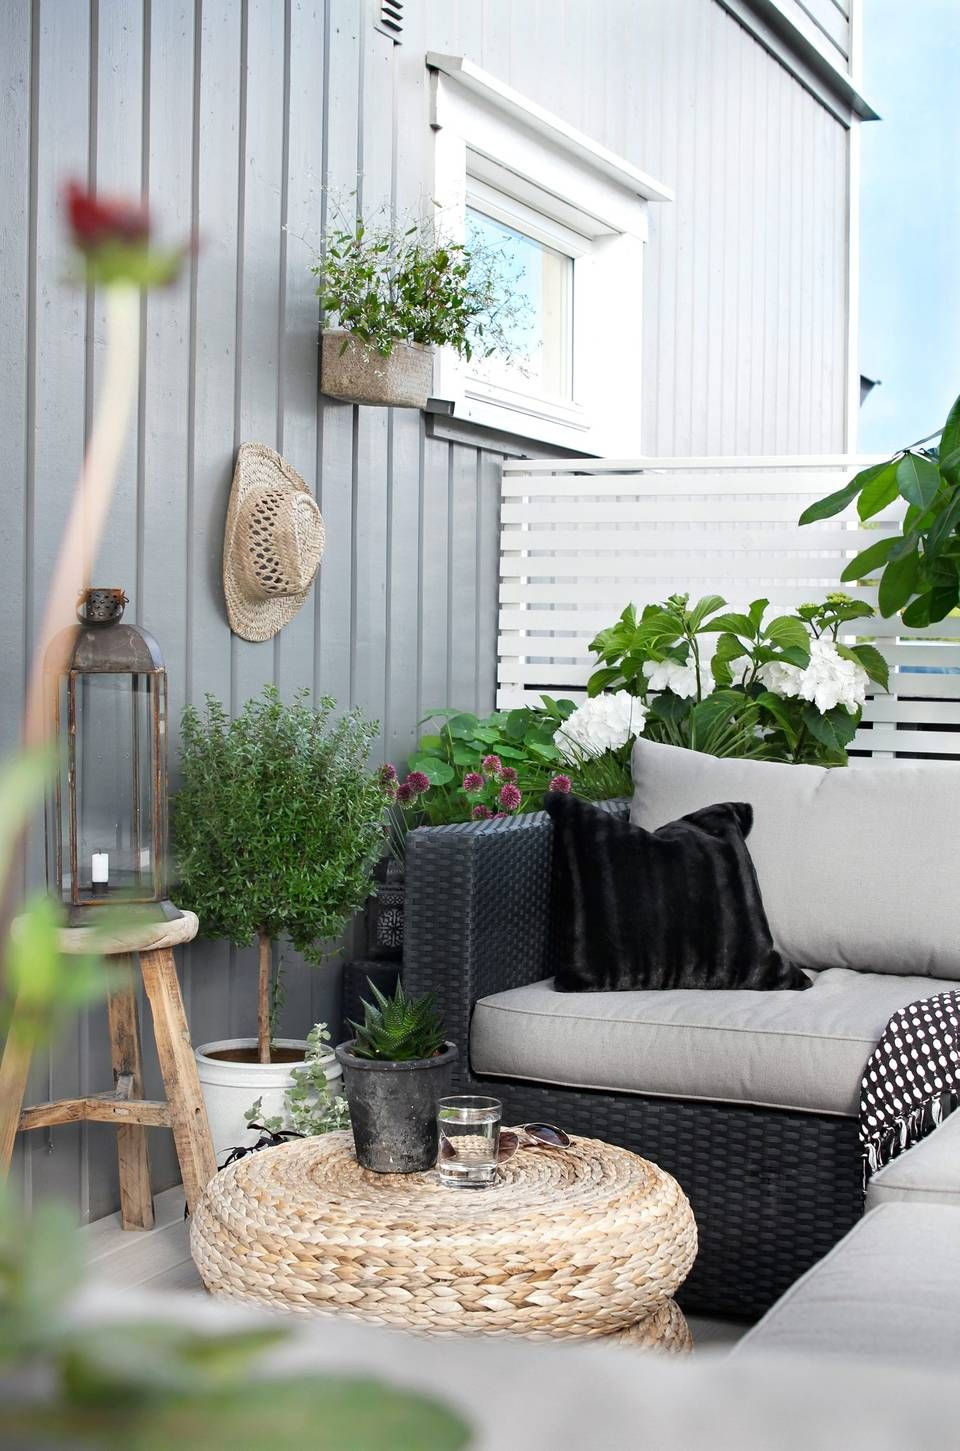 Home Balcony Decoration Design Find Thousands Of Interior Design Ideas For  Your Home With The Latest Interior Inspiration On Interiorpic Includes Décor  ...